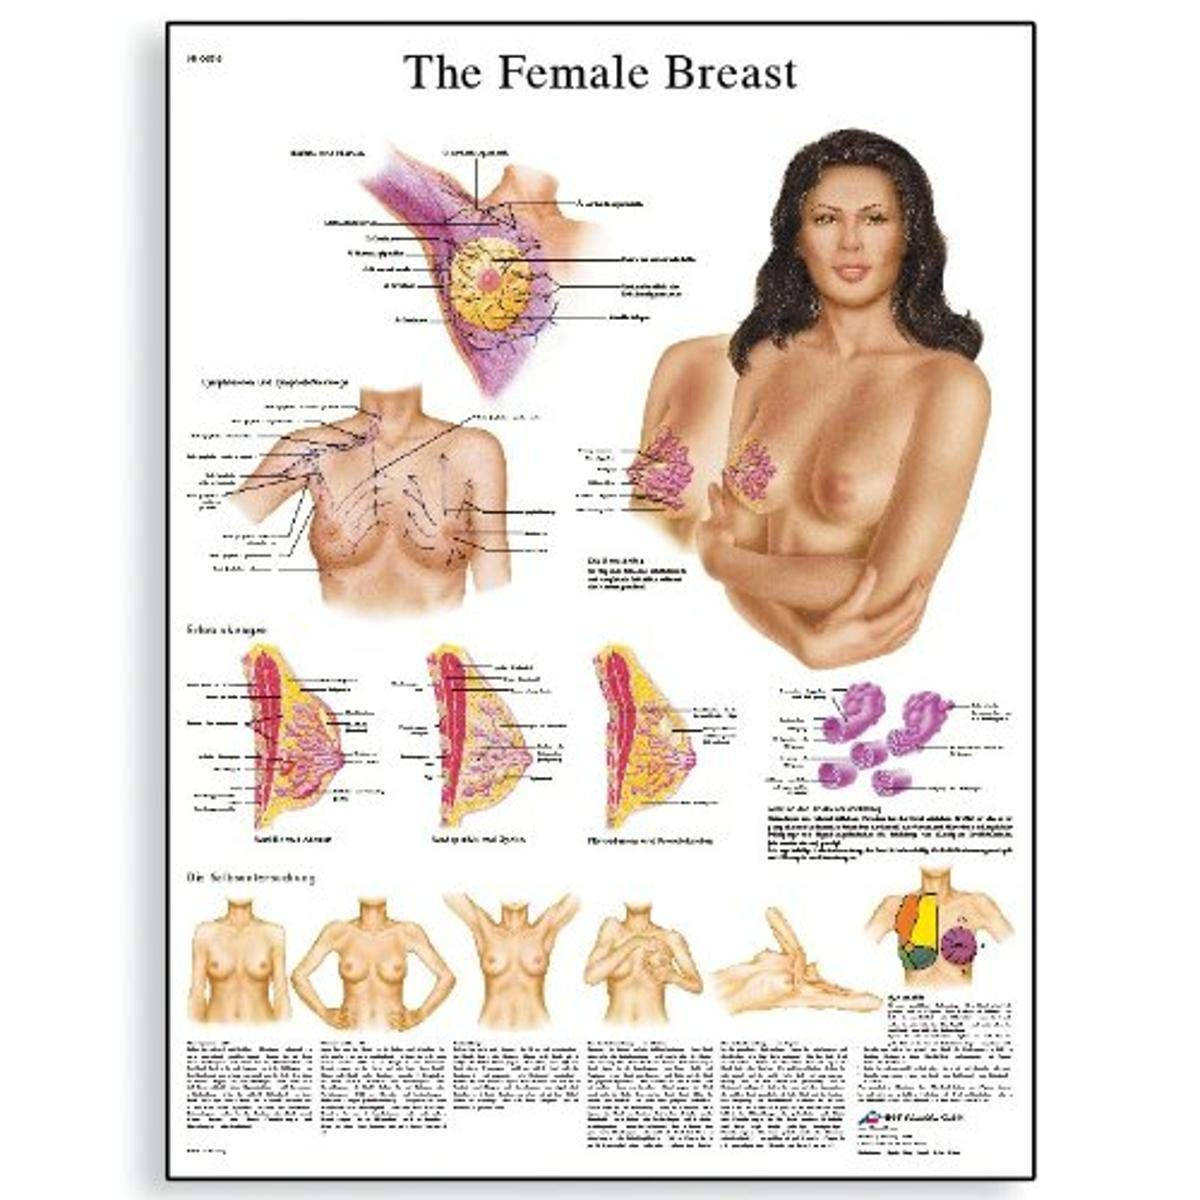 "3B Scientific VR1556UU Glossy Paper The Female Breast Chart Anatomy, Pathology and Self-Examination, Poster Size 20"" Width x 26"" Height"